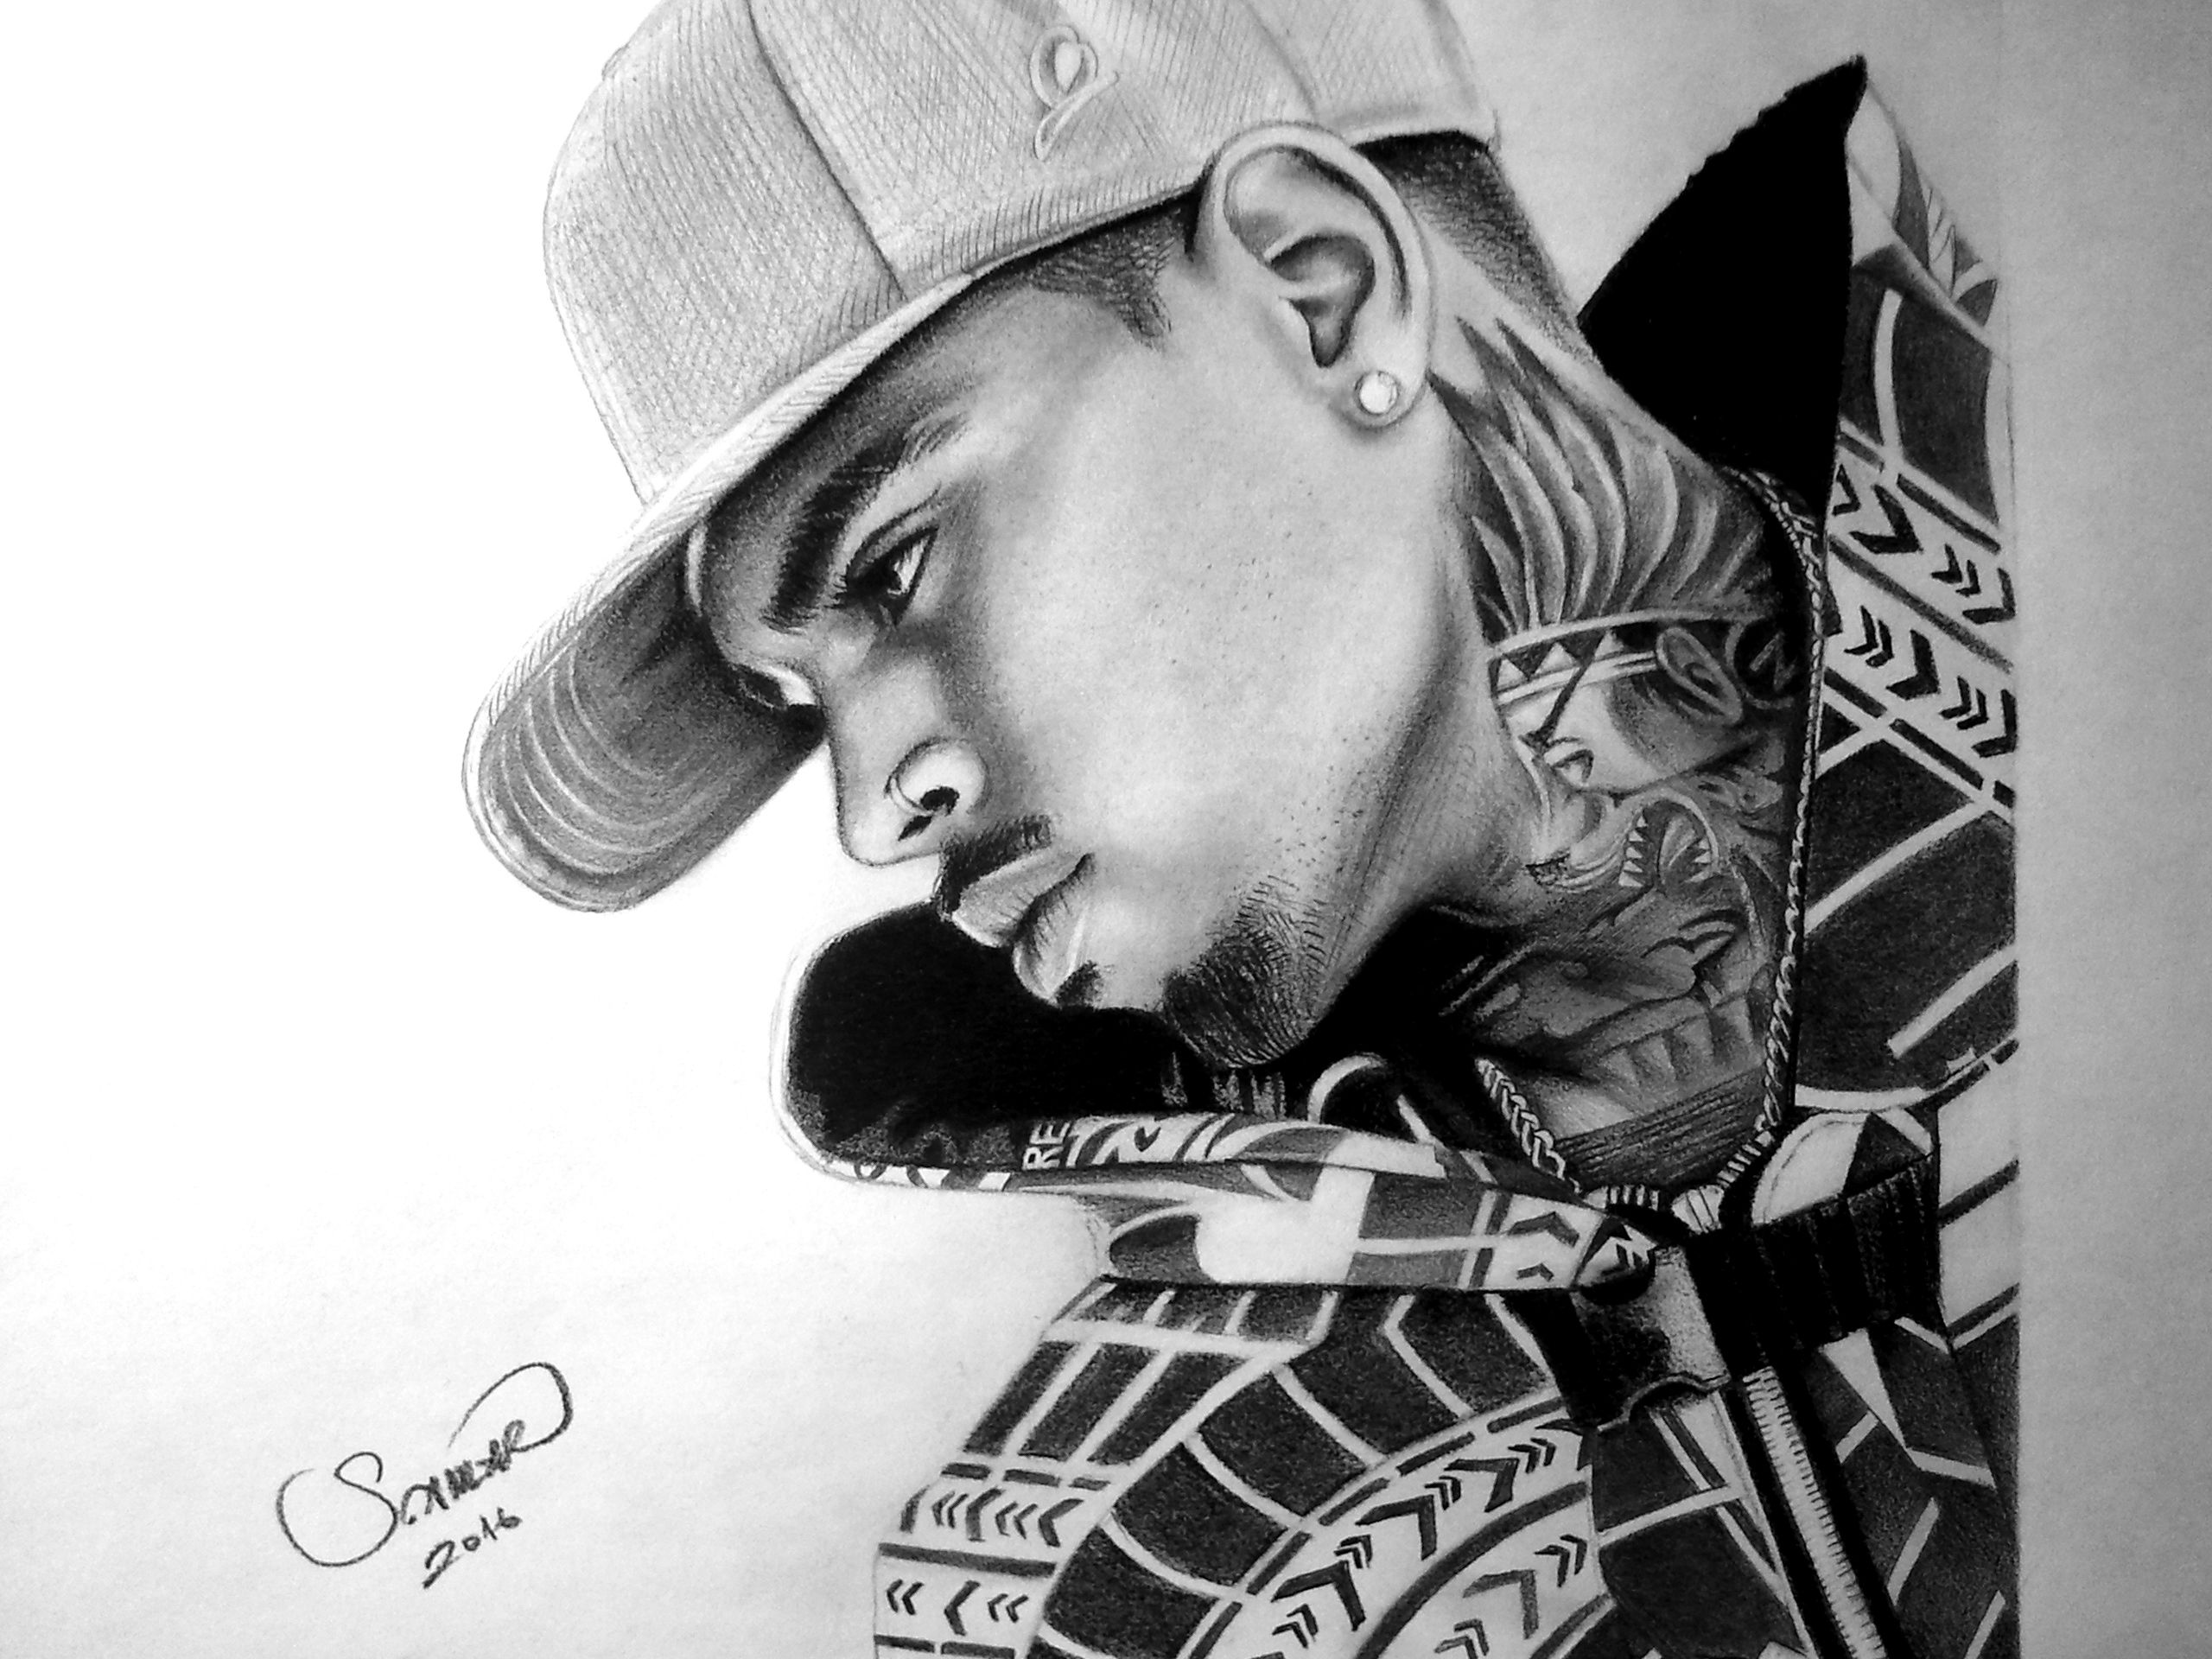 Chris brown a4 8b 2b pencil work my drawing collection chris brown a4 8b 2b pencil work altavistaventures Images